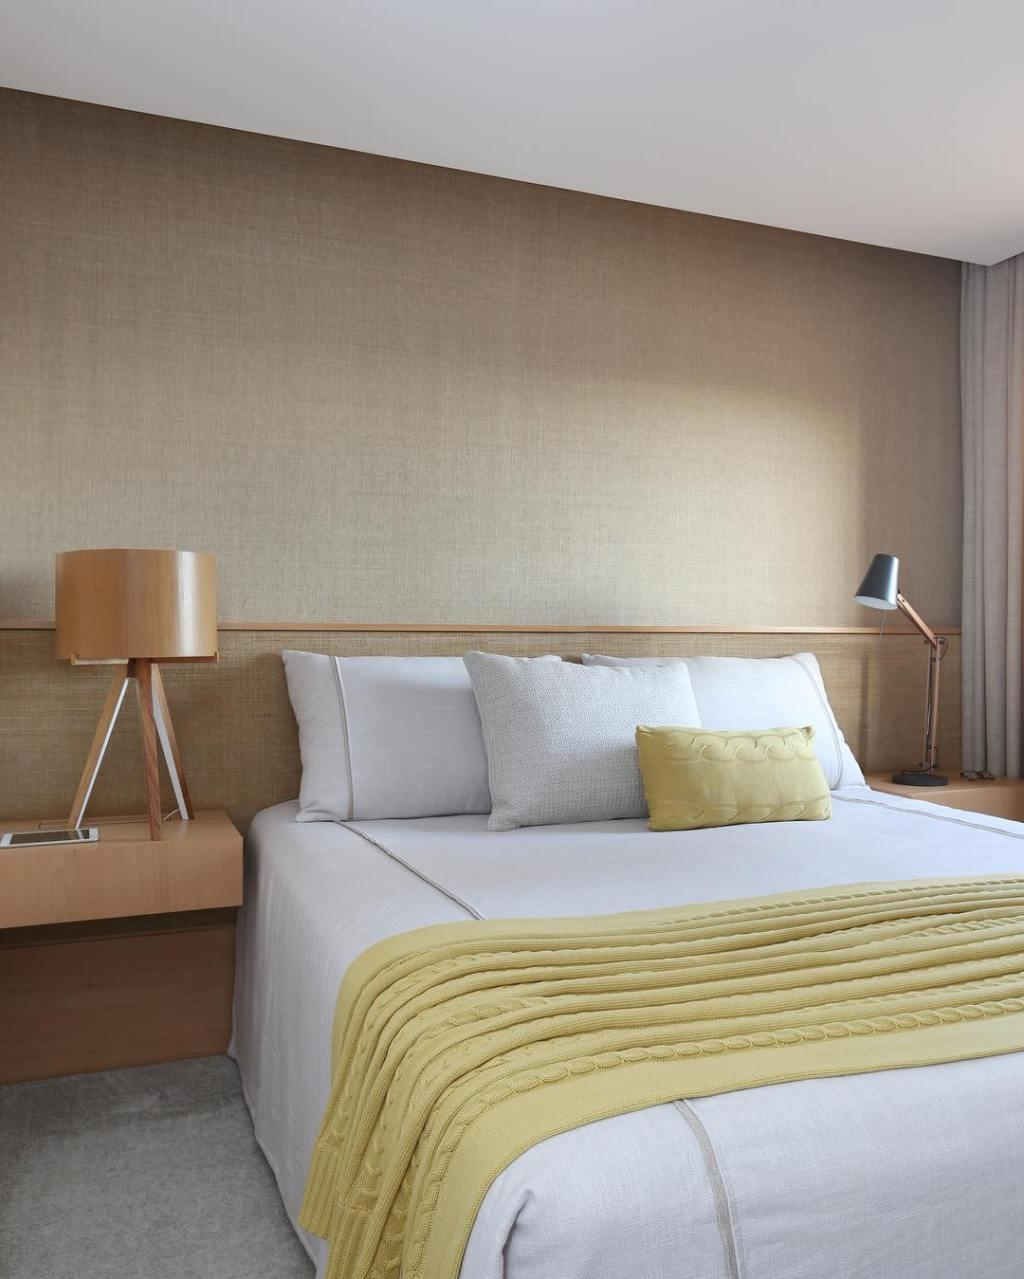 Upholstered headboard: 60 ideas and references to use in decor 9